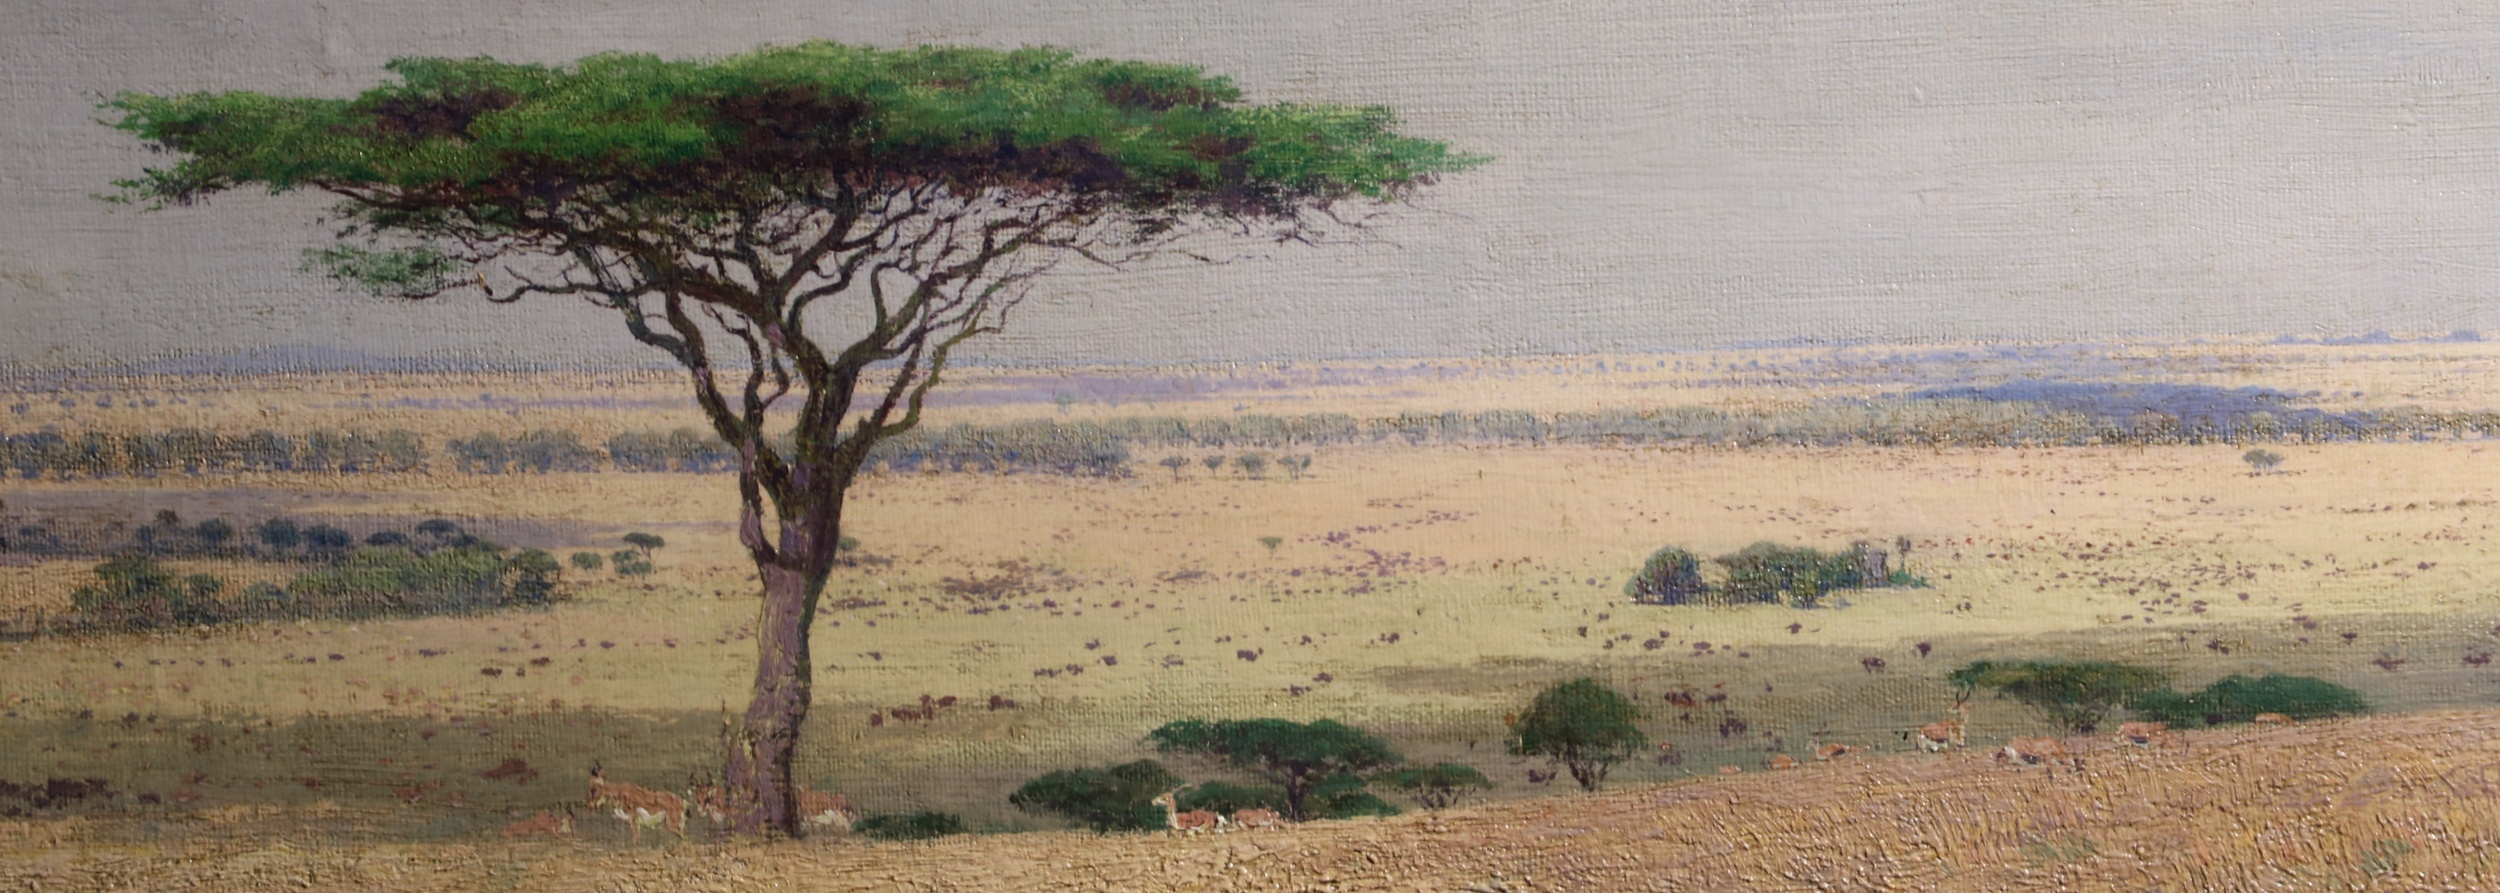 William Leigh's plein-air African preparatory painting, for the ANHM diorama.